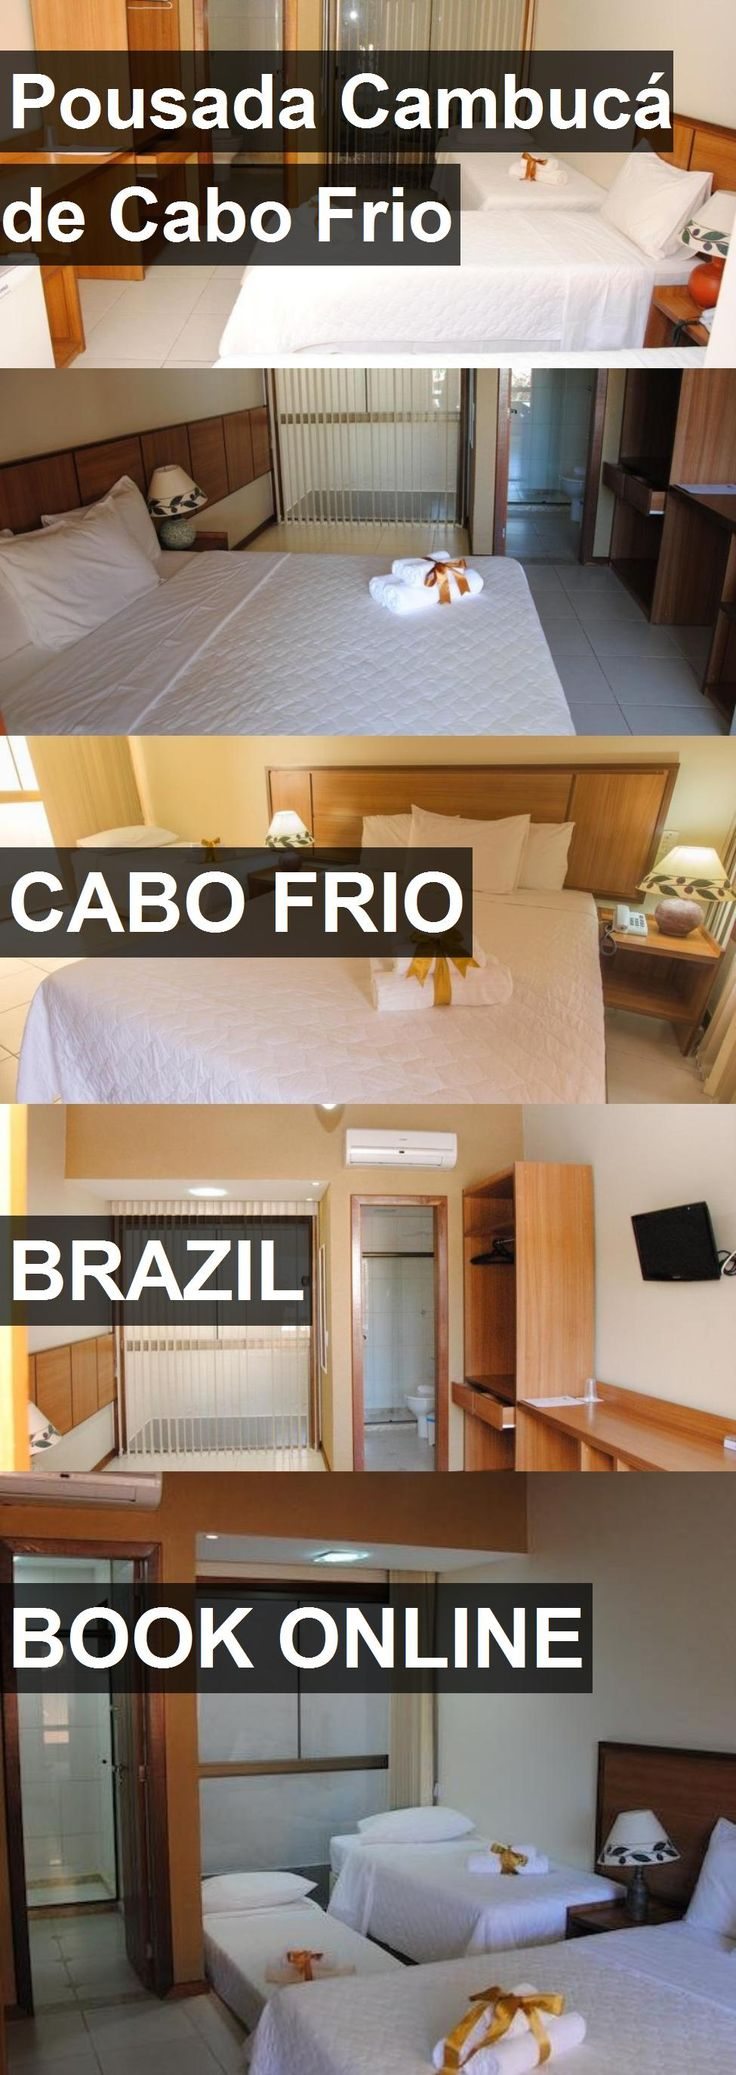 Hotel Pousada Cambucá de Cabo Frio in Cabo Frio, Brazil. For more information, photos, reviews and best prices please follow the link. #Brazil #CaboFrio #hotel #travel #vacation